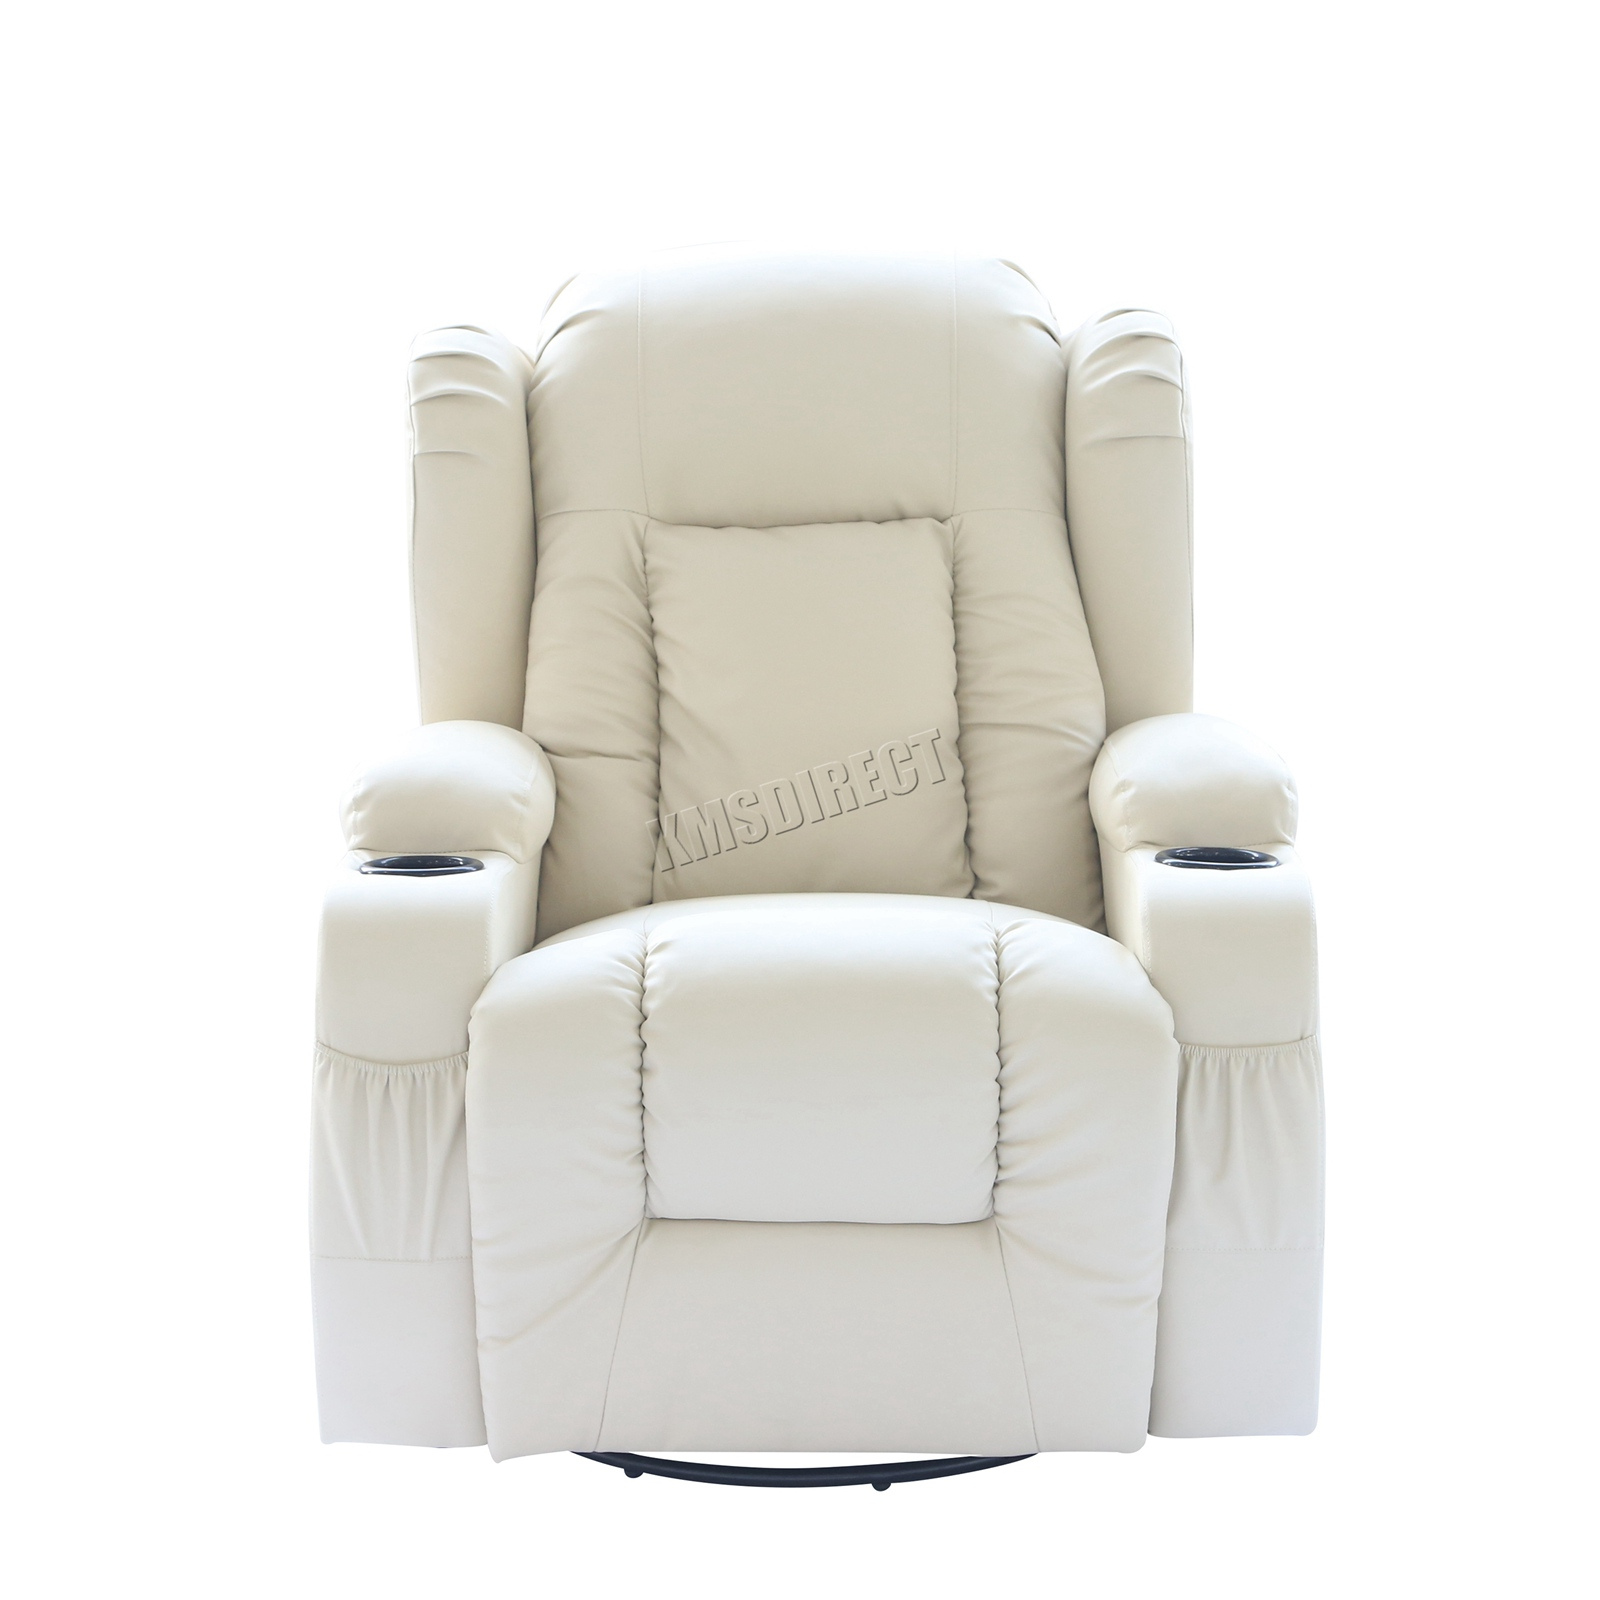 Outstanding Details About Westwood Leather Recliner Armchair Swivel Heated Chair Massage Gaming Chair Machost Co Dining Chair Design Ideas Machostcouk